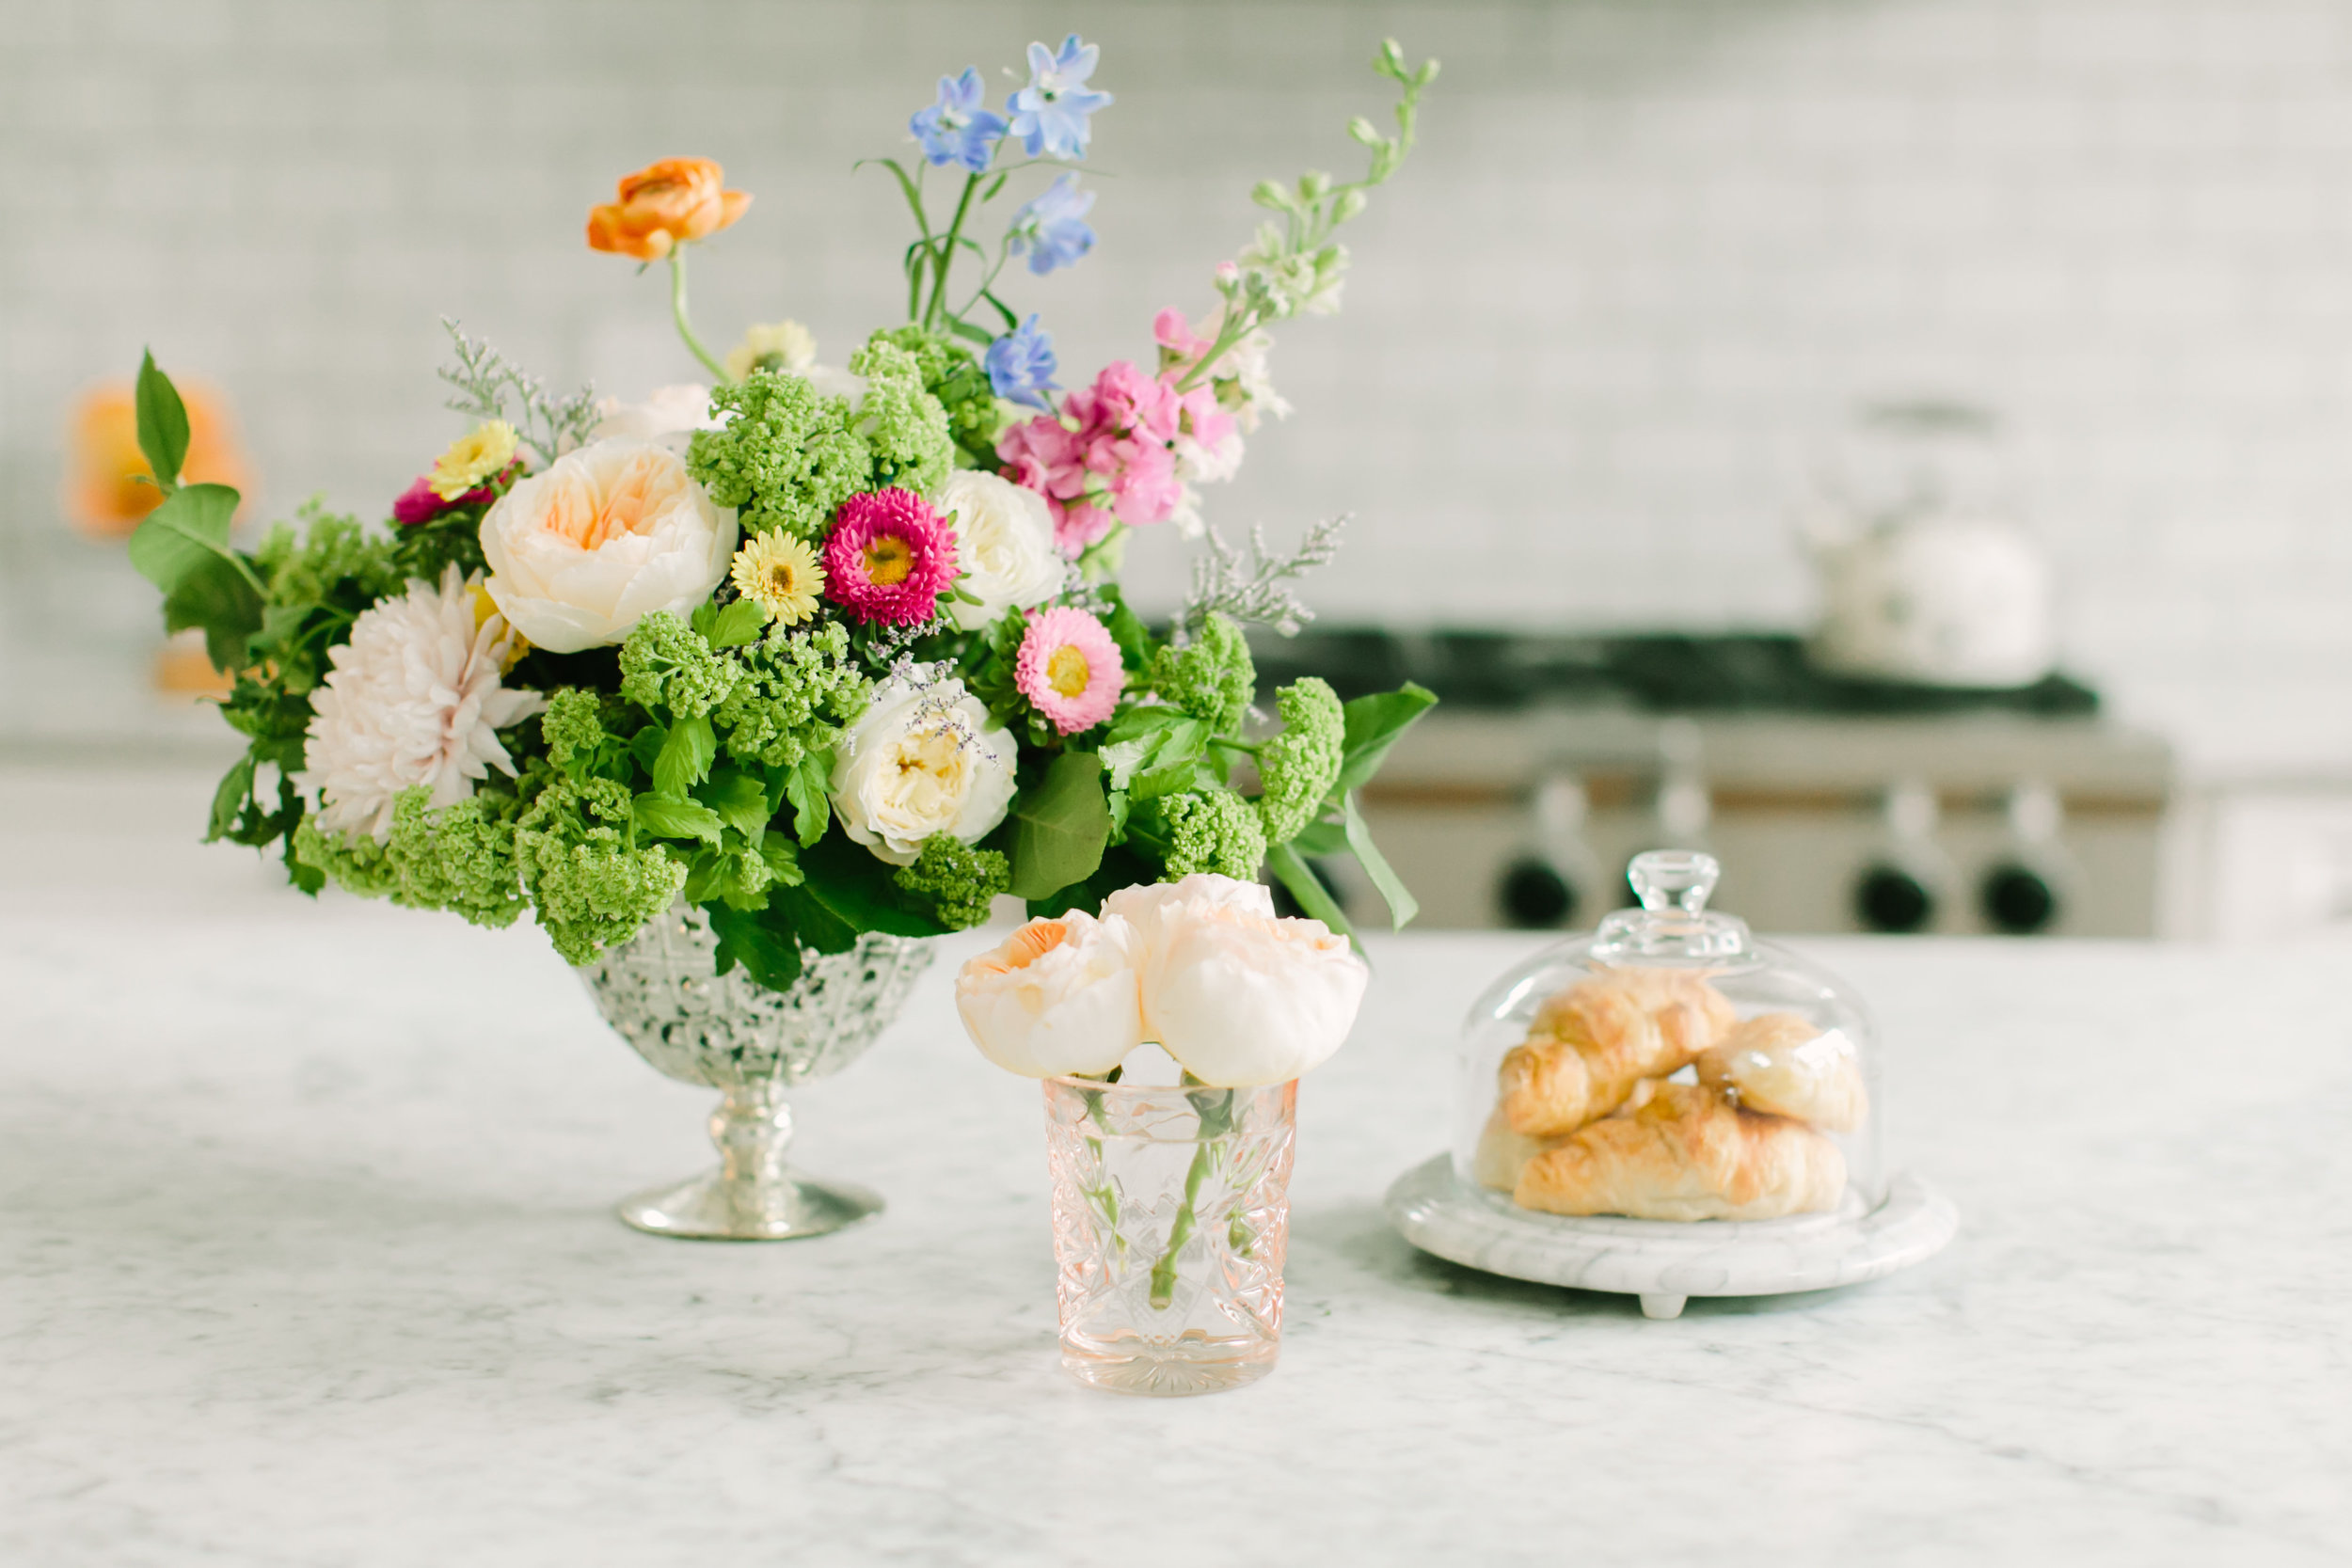 working from home floral arrangement morning time breakfast client meetings small business advice